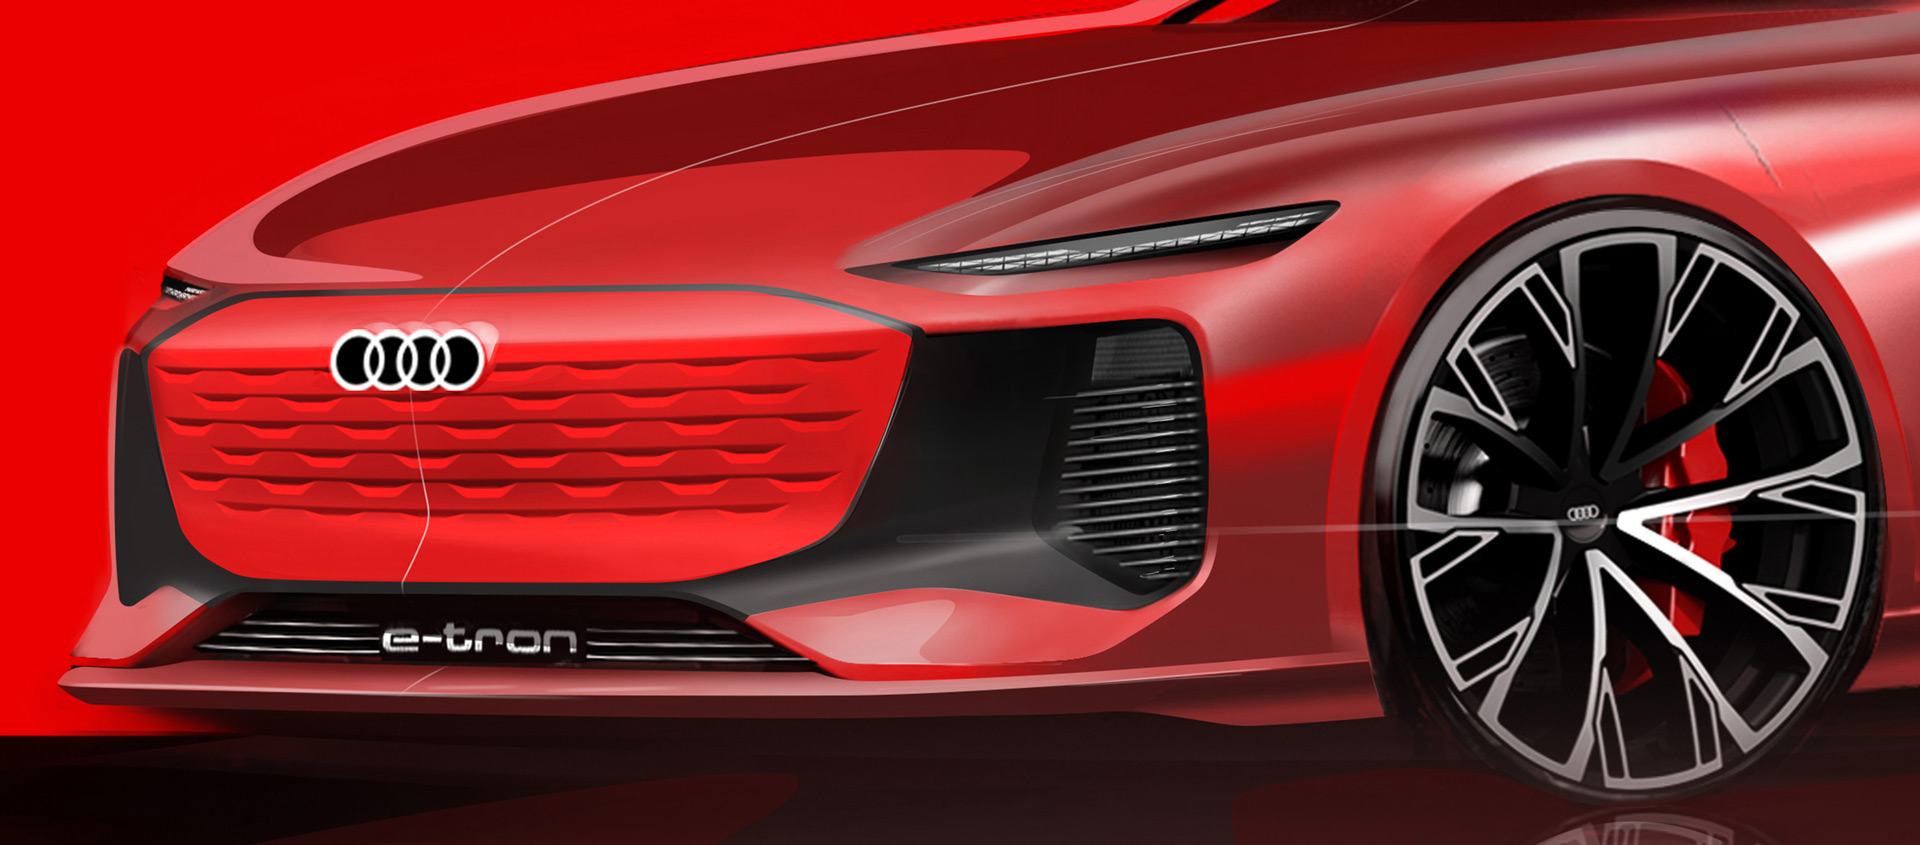 Concept Cars News cover image